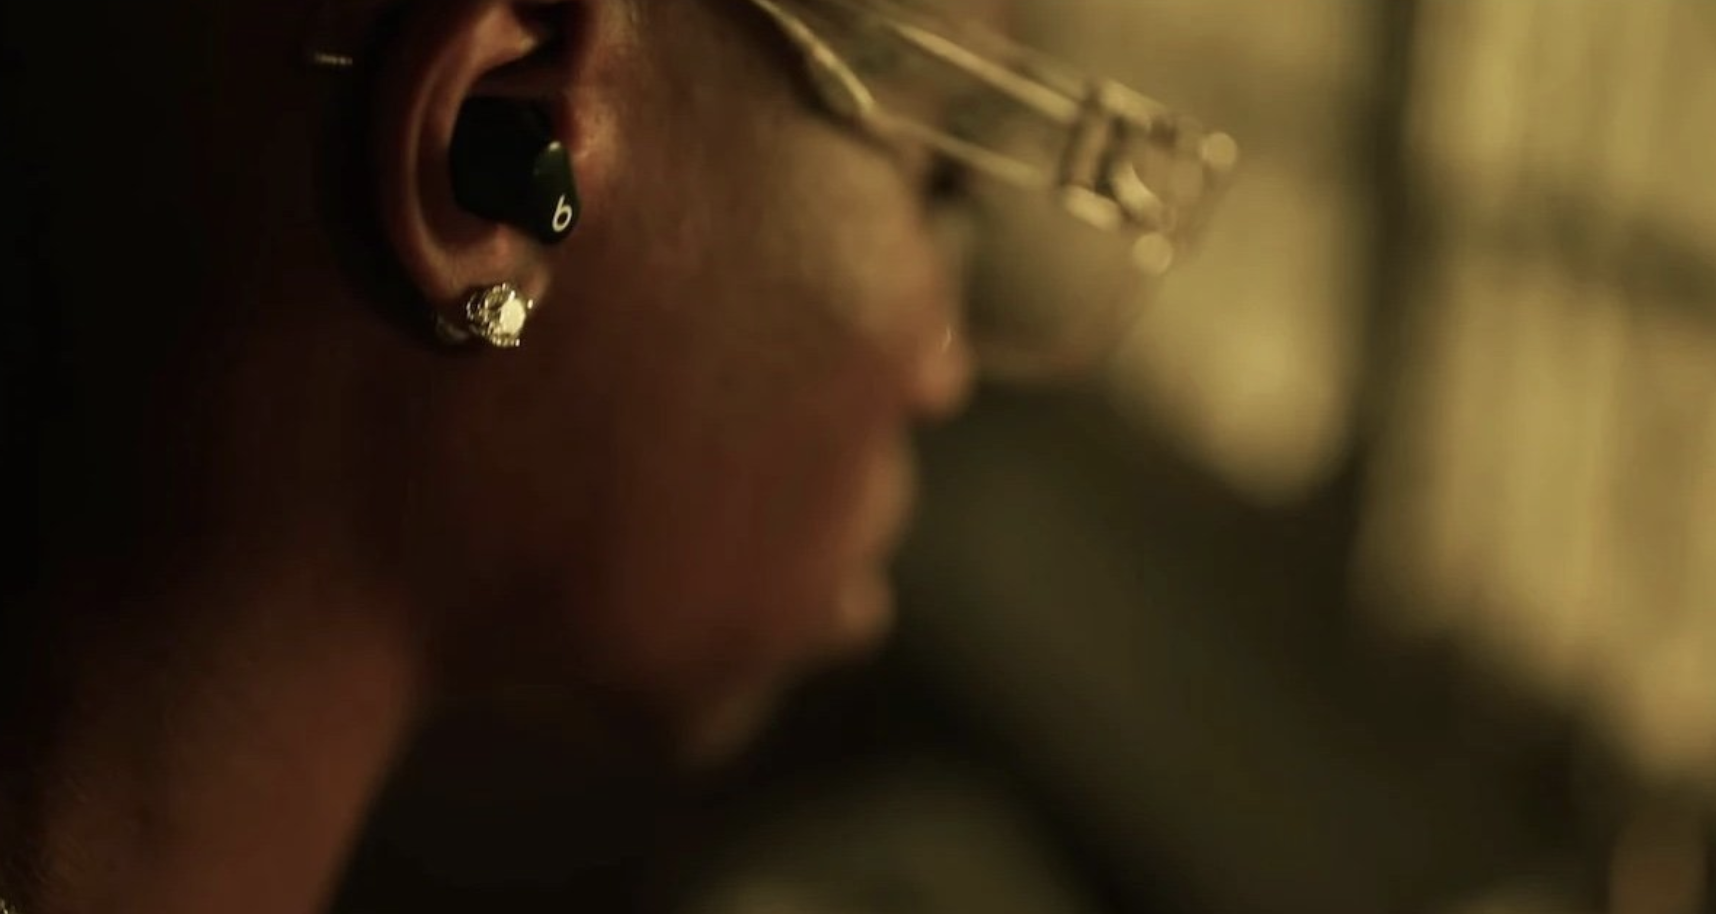 Beats Studio Buds makes another appearance in music video